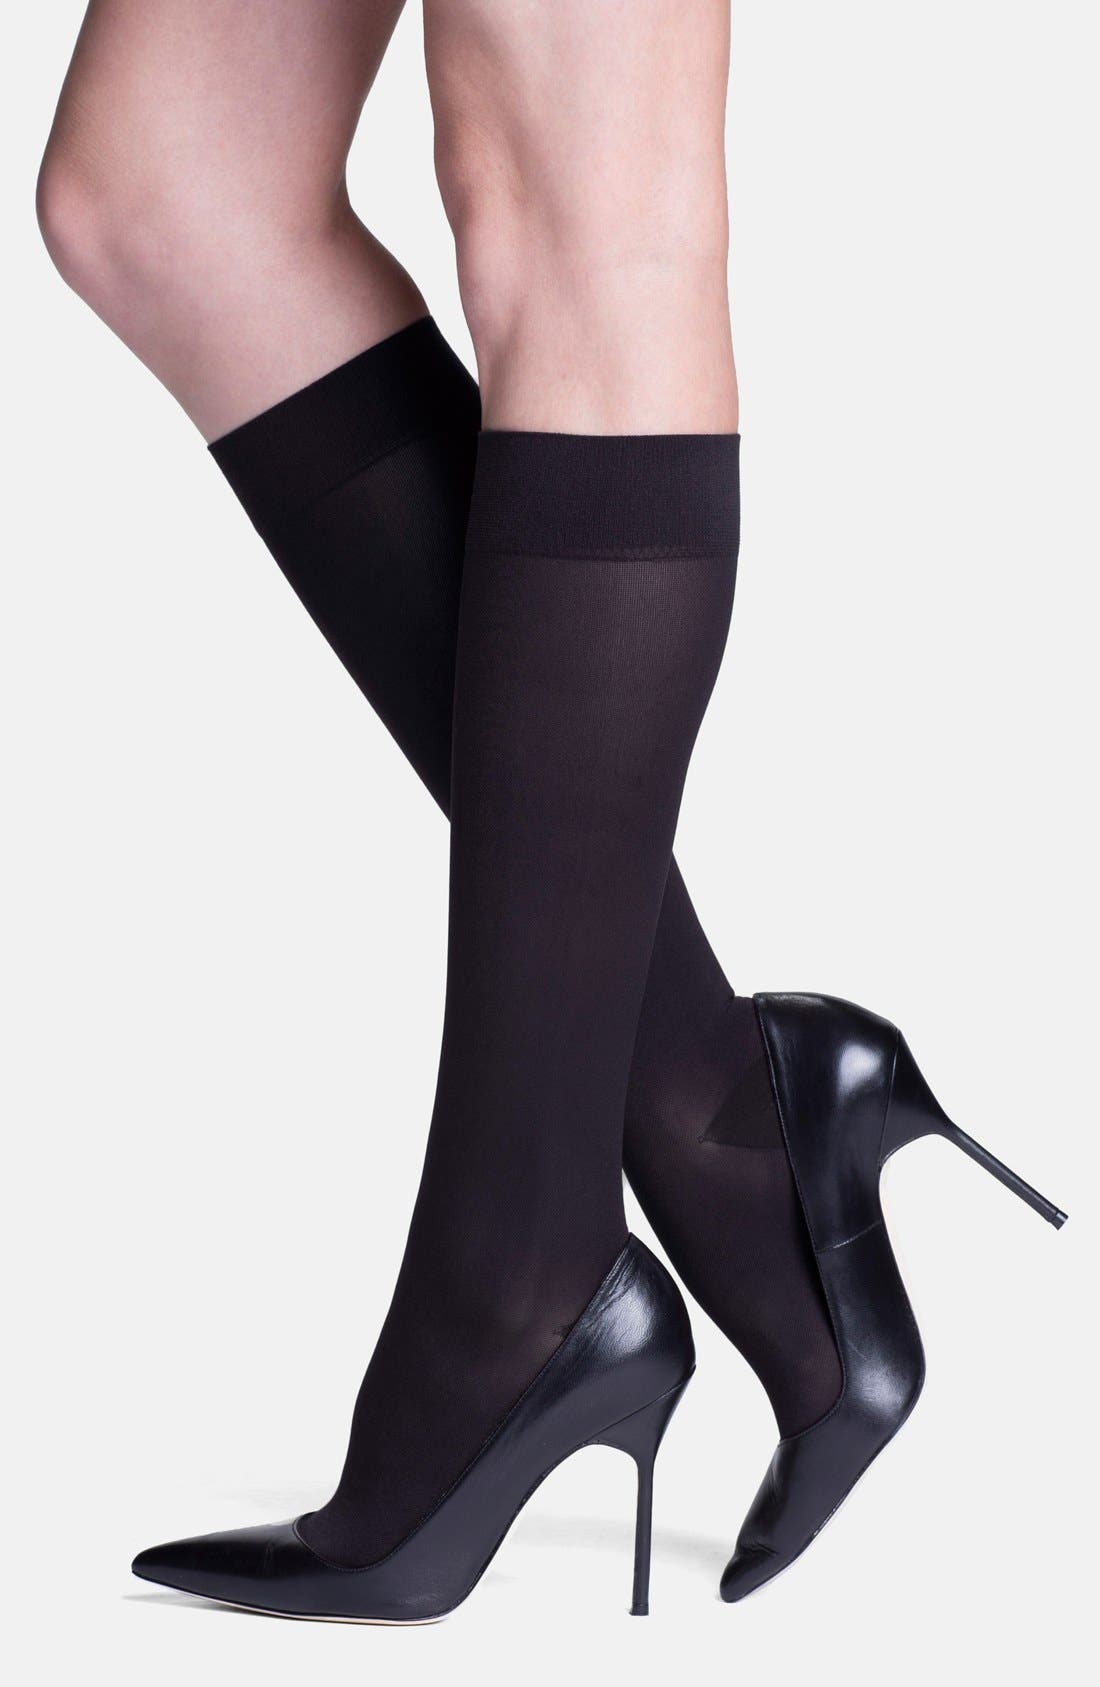 'Headliner' Compression Knee High Socks,                         Main,                         color, BLACK